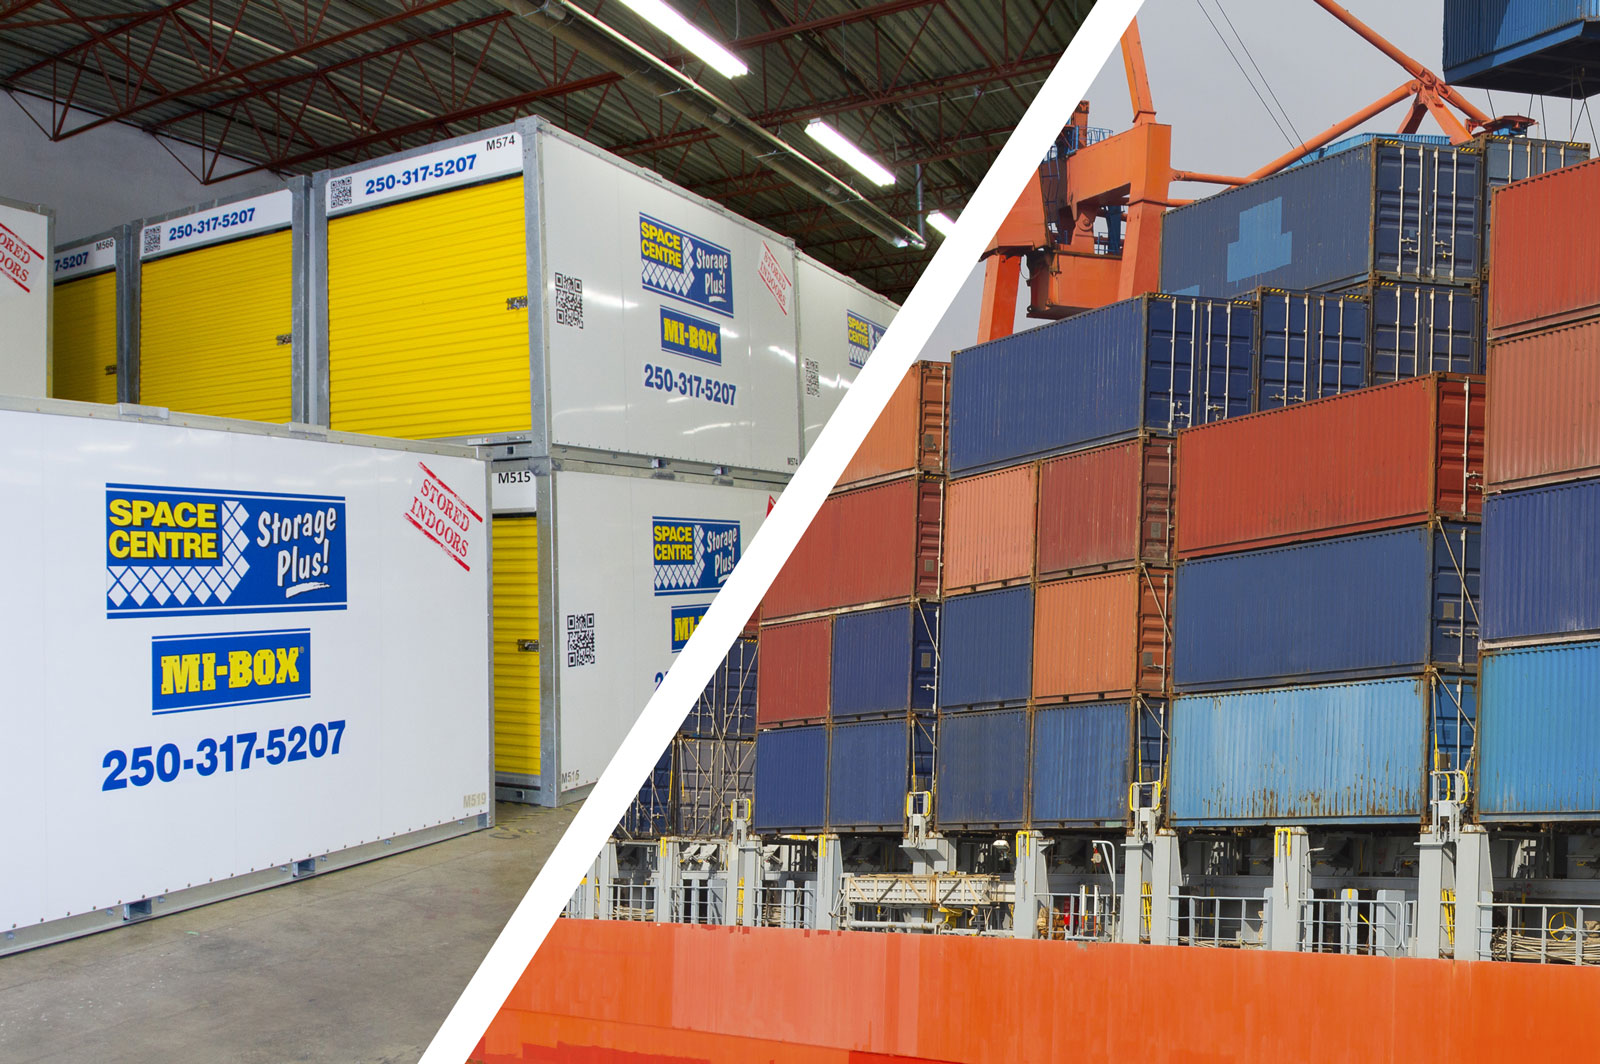 Thinking About Moving Shop Kelowna Mobile Storage Containers Can Help Space Centre Storage - Shipping Supplies Kelowna